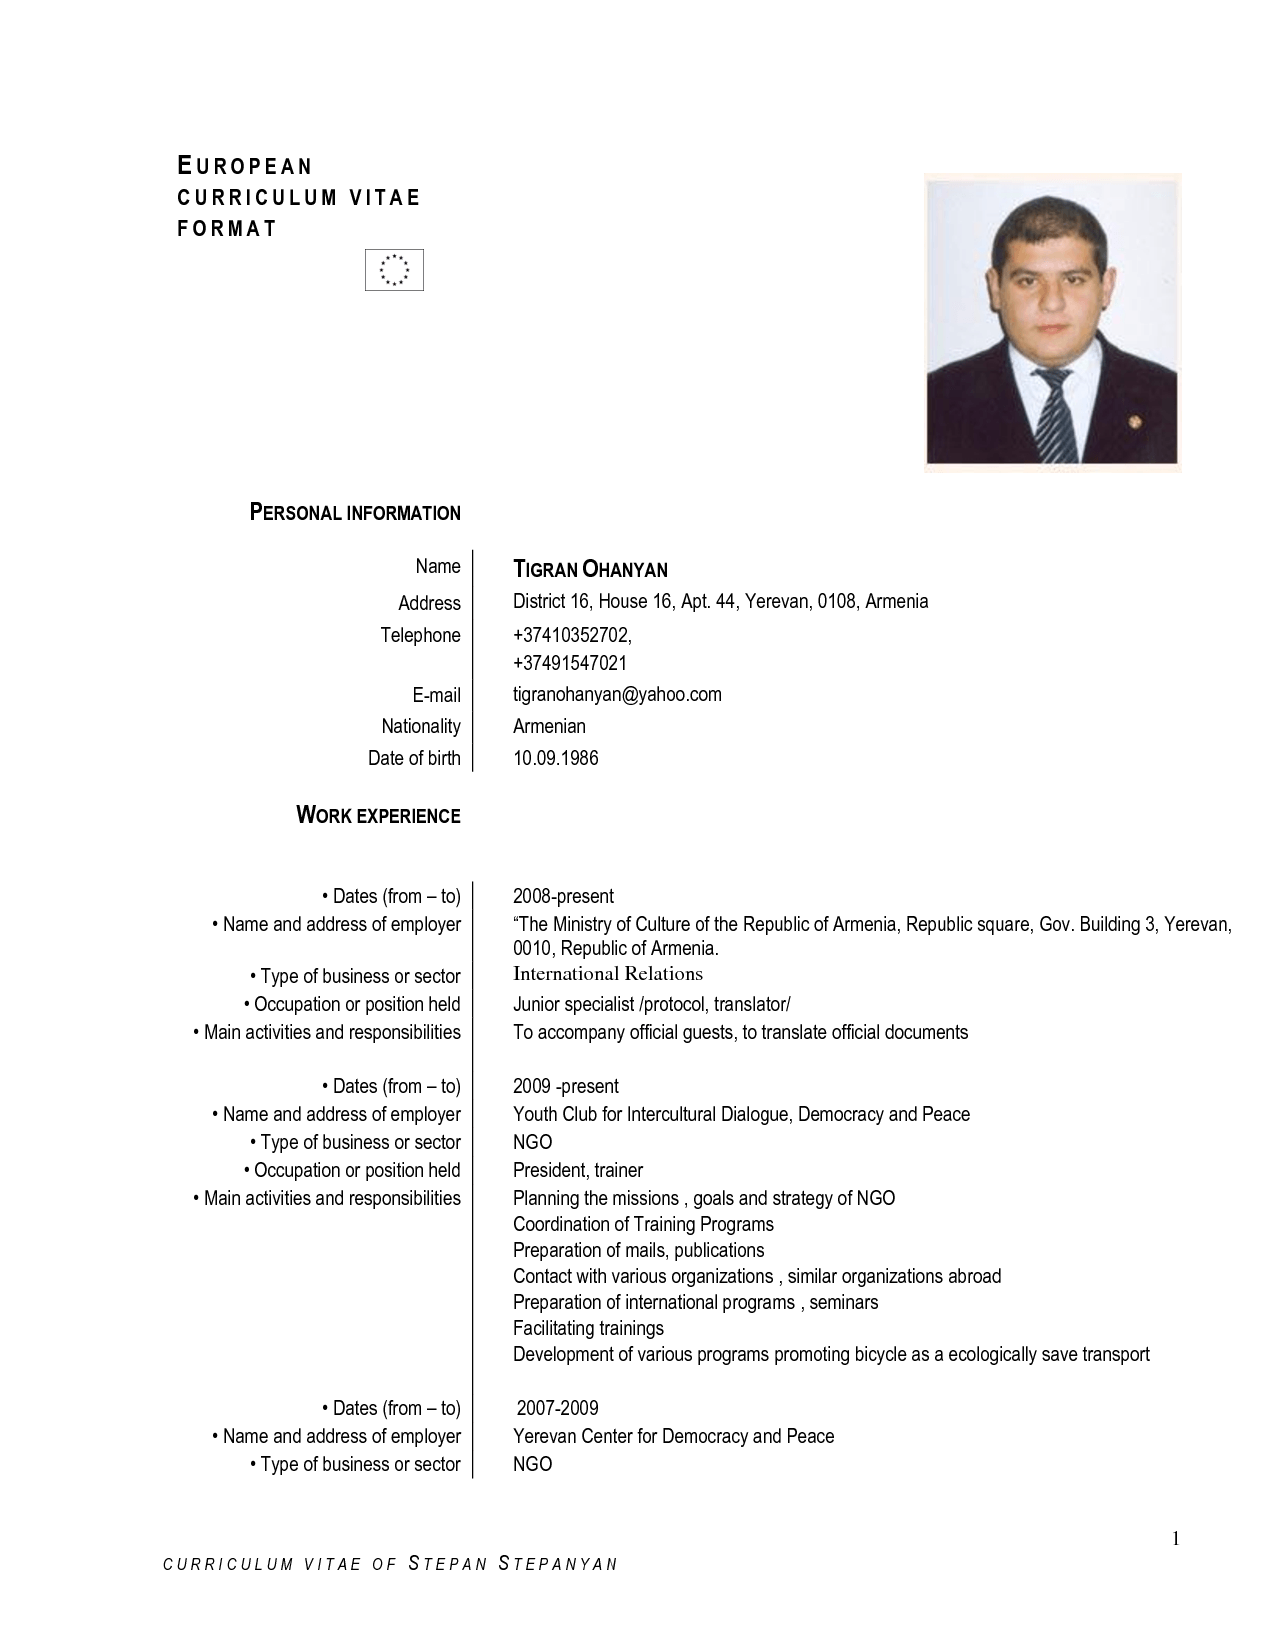 Europass cv english example doc cv examples europass english cv europass cv english example doc cv examples europass english cv template yelopaper Gallery